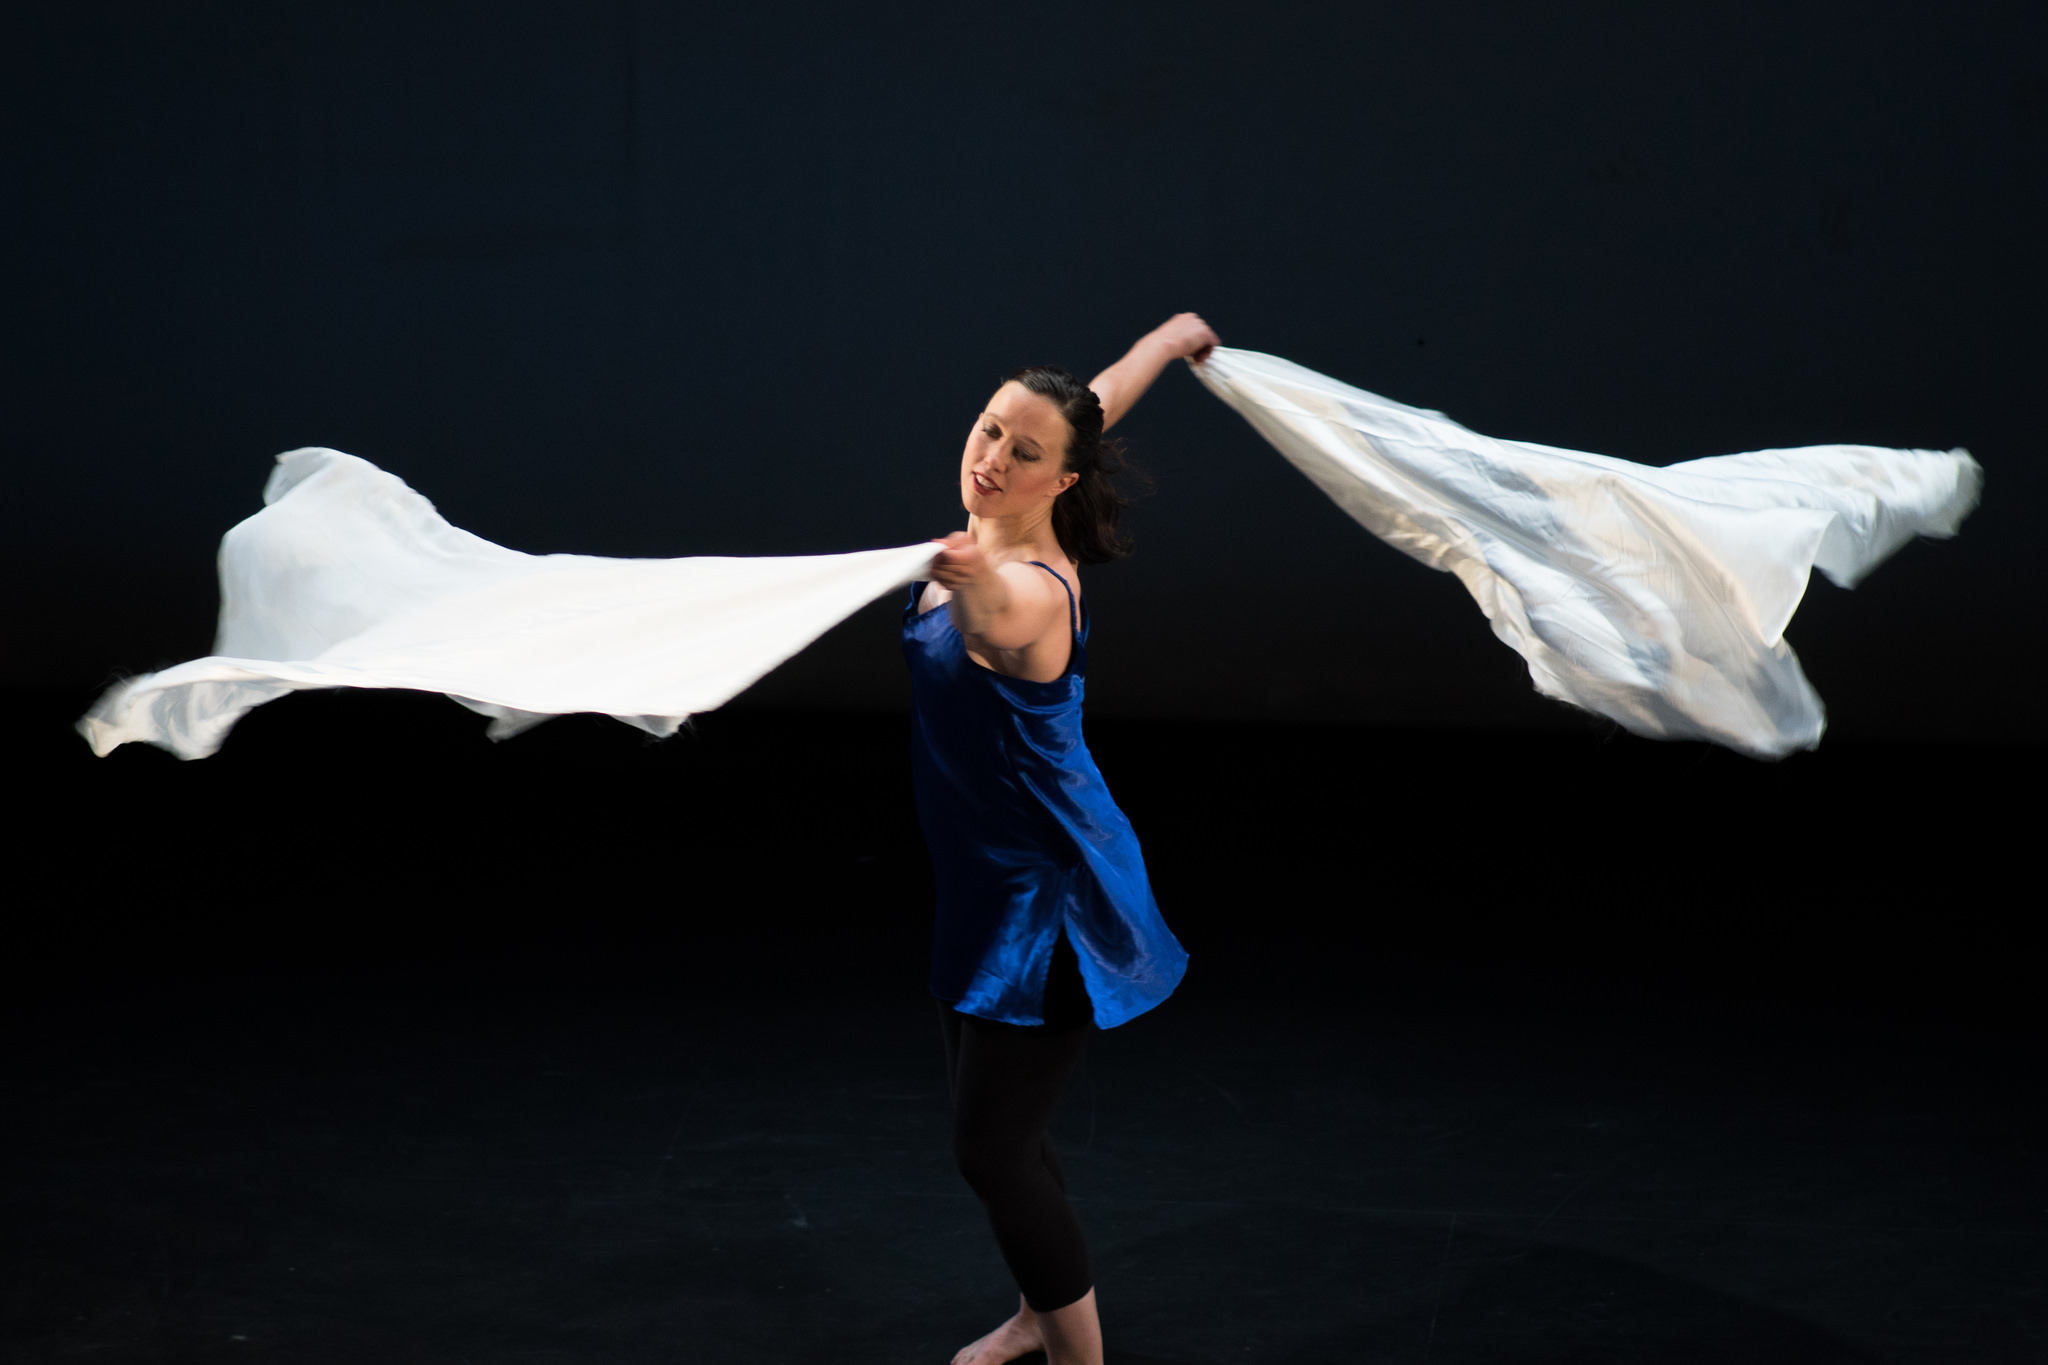 Molly Gawler dance performance